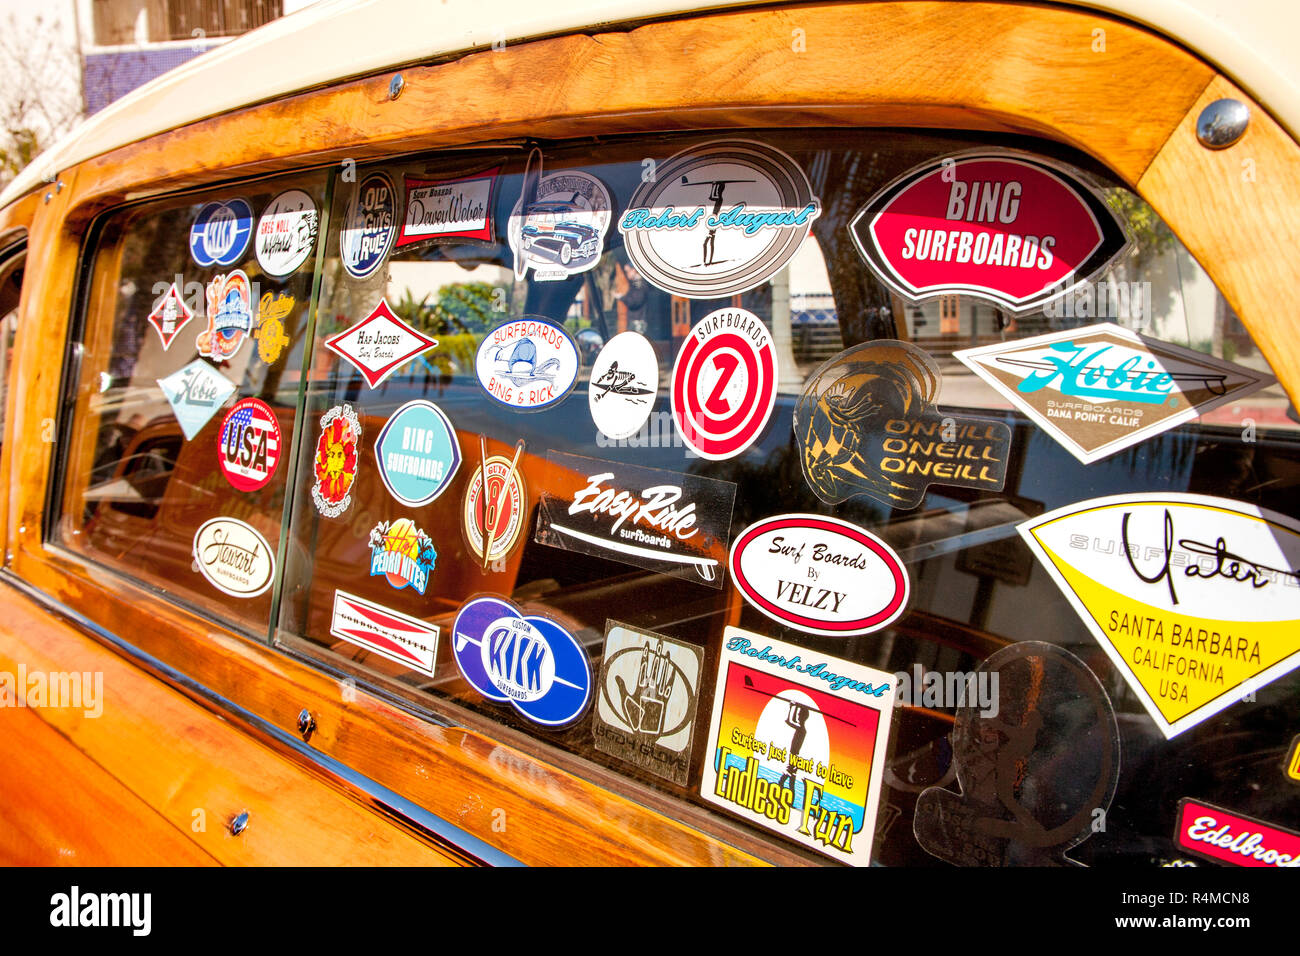 Woodie Stock Photos Images Alamy 1942 1951 Ford Cars For Sale A Collection Of Surfing Related Stickers Decorates The Side Window At